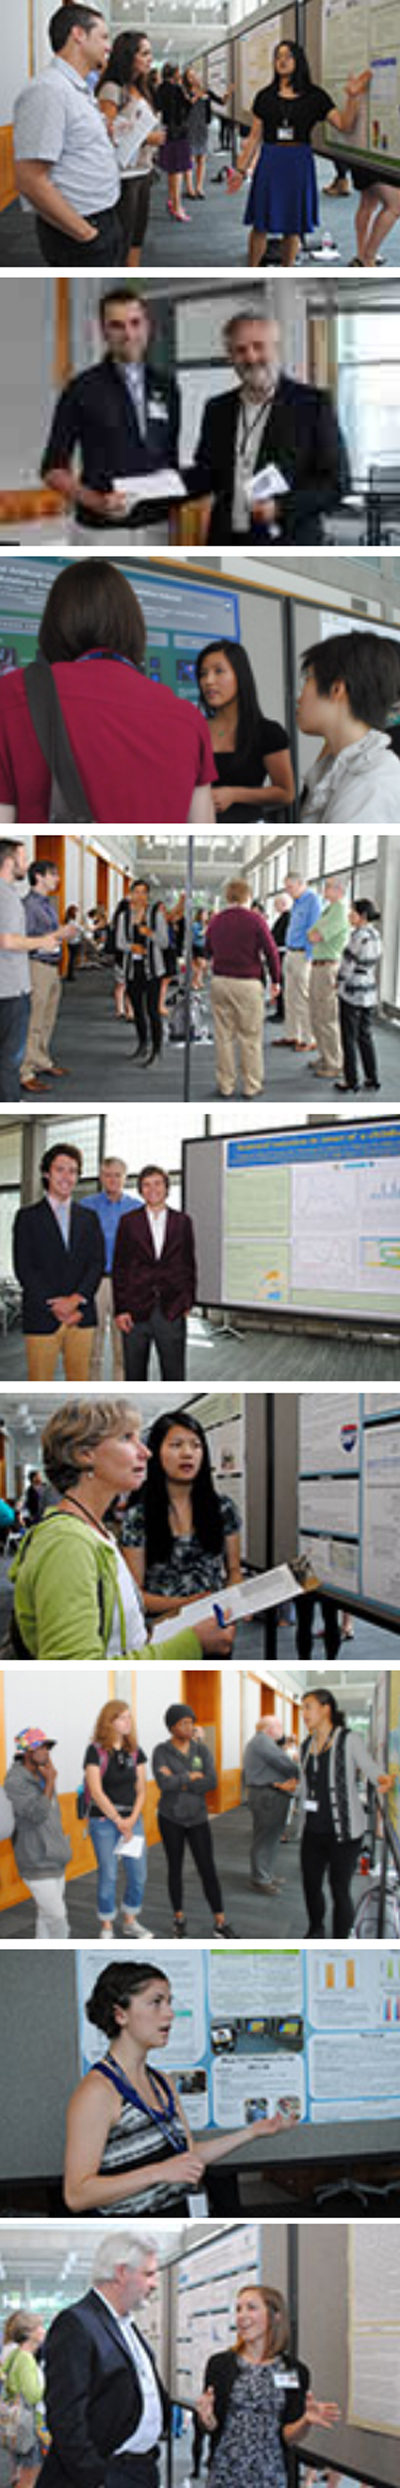 Images from the 2014 summer intern poster session where the interns presented their research in poster form and explained their research to the Institute's faculty and staff